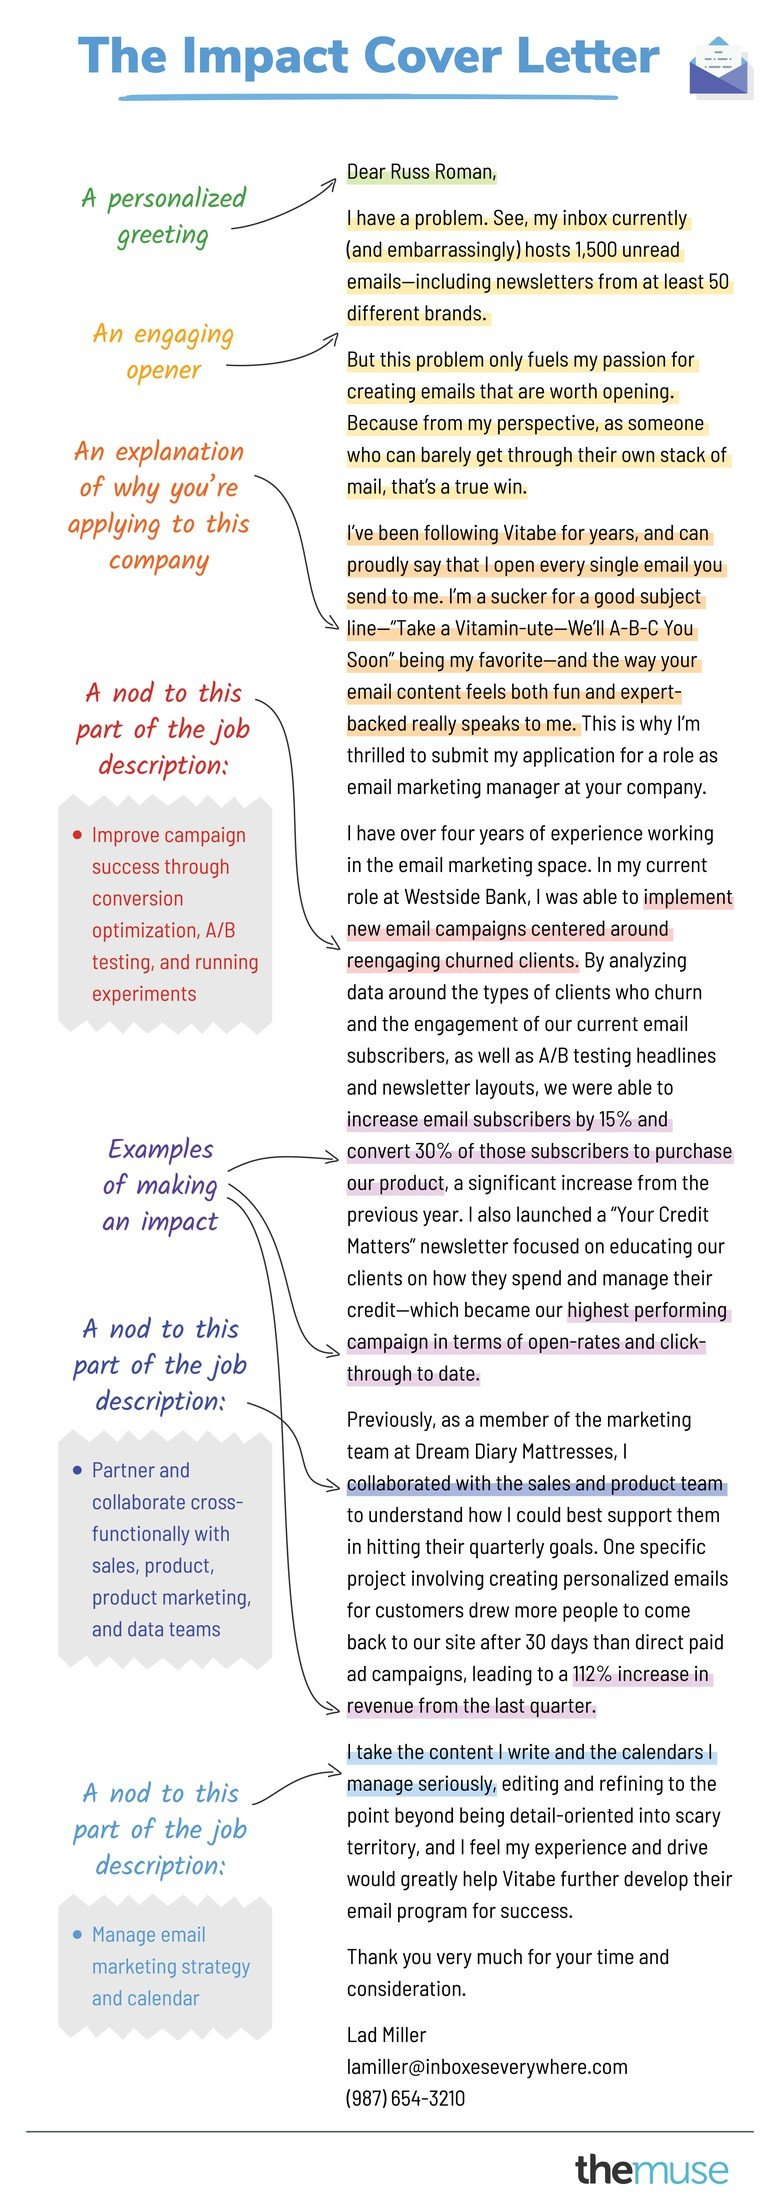 Cover Letter For A Job Example from pilbox.themuse.com